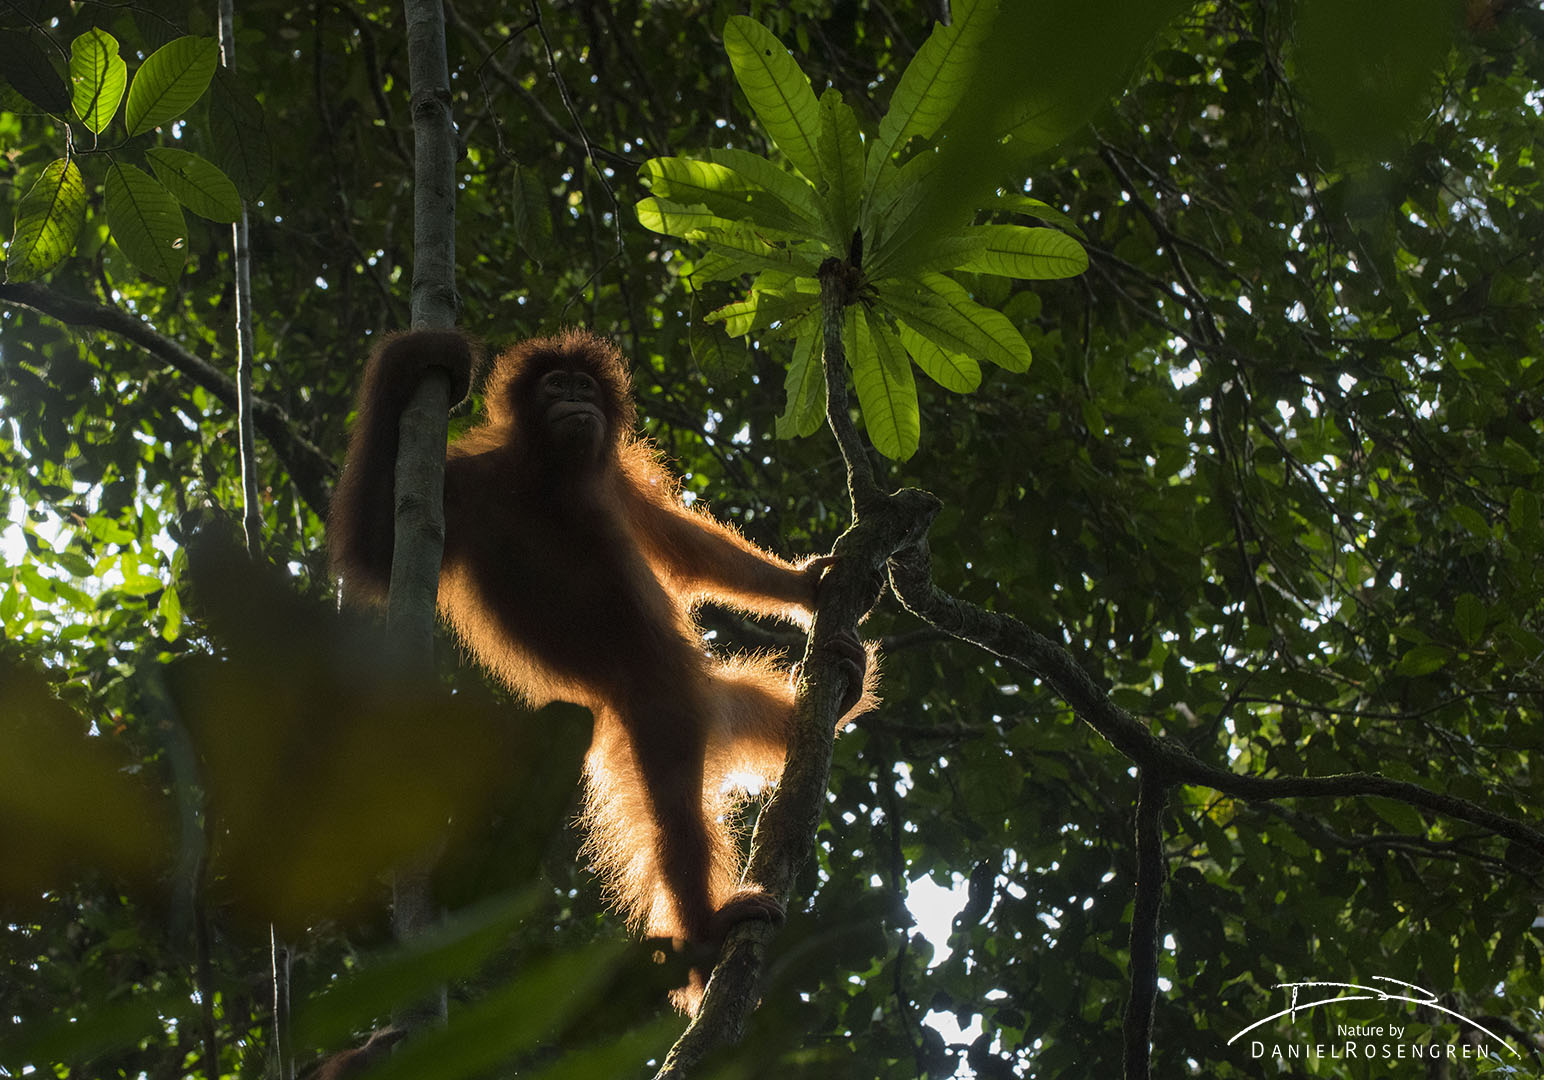 The sun is making the hairs of this Orang-utan to glow. © Daniel Rosengren